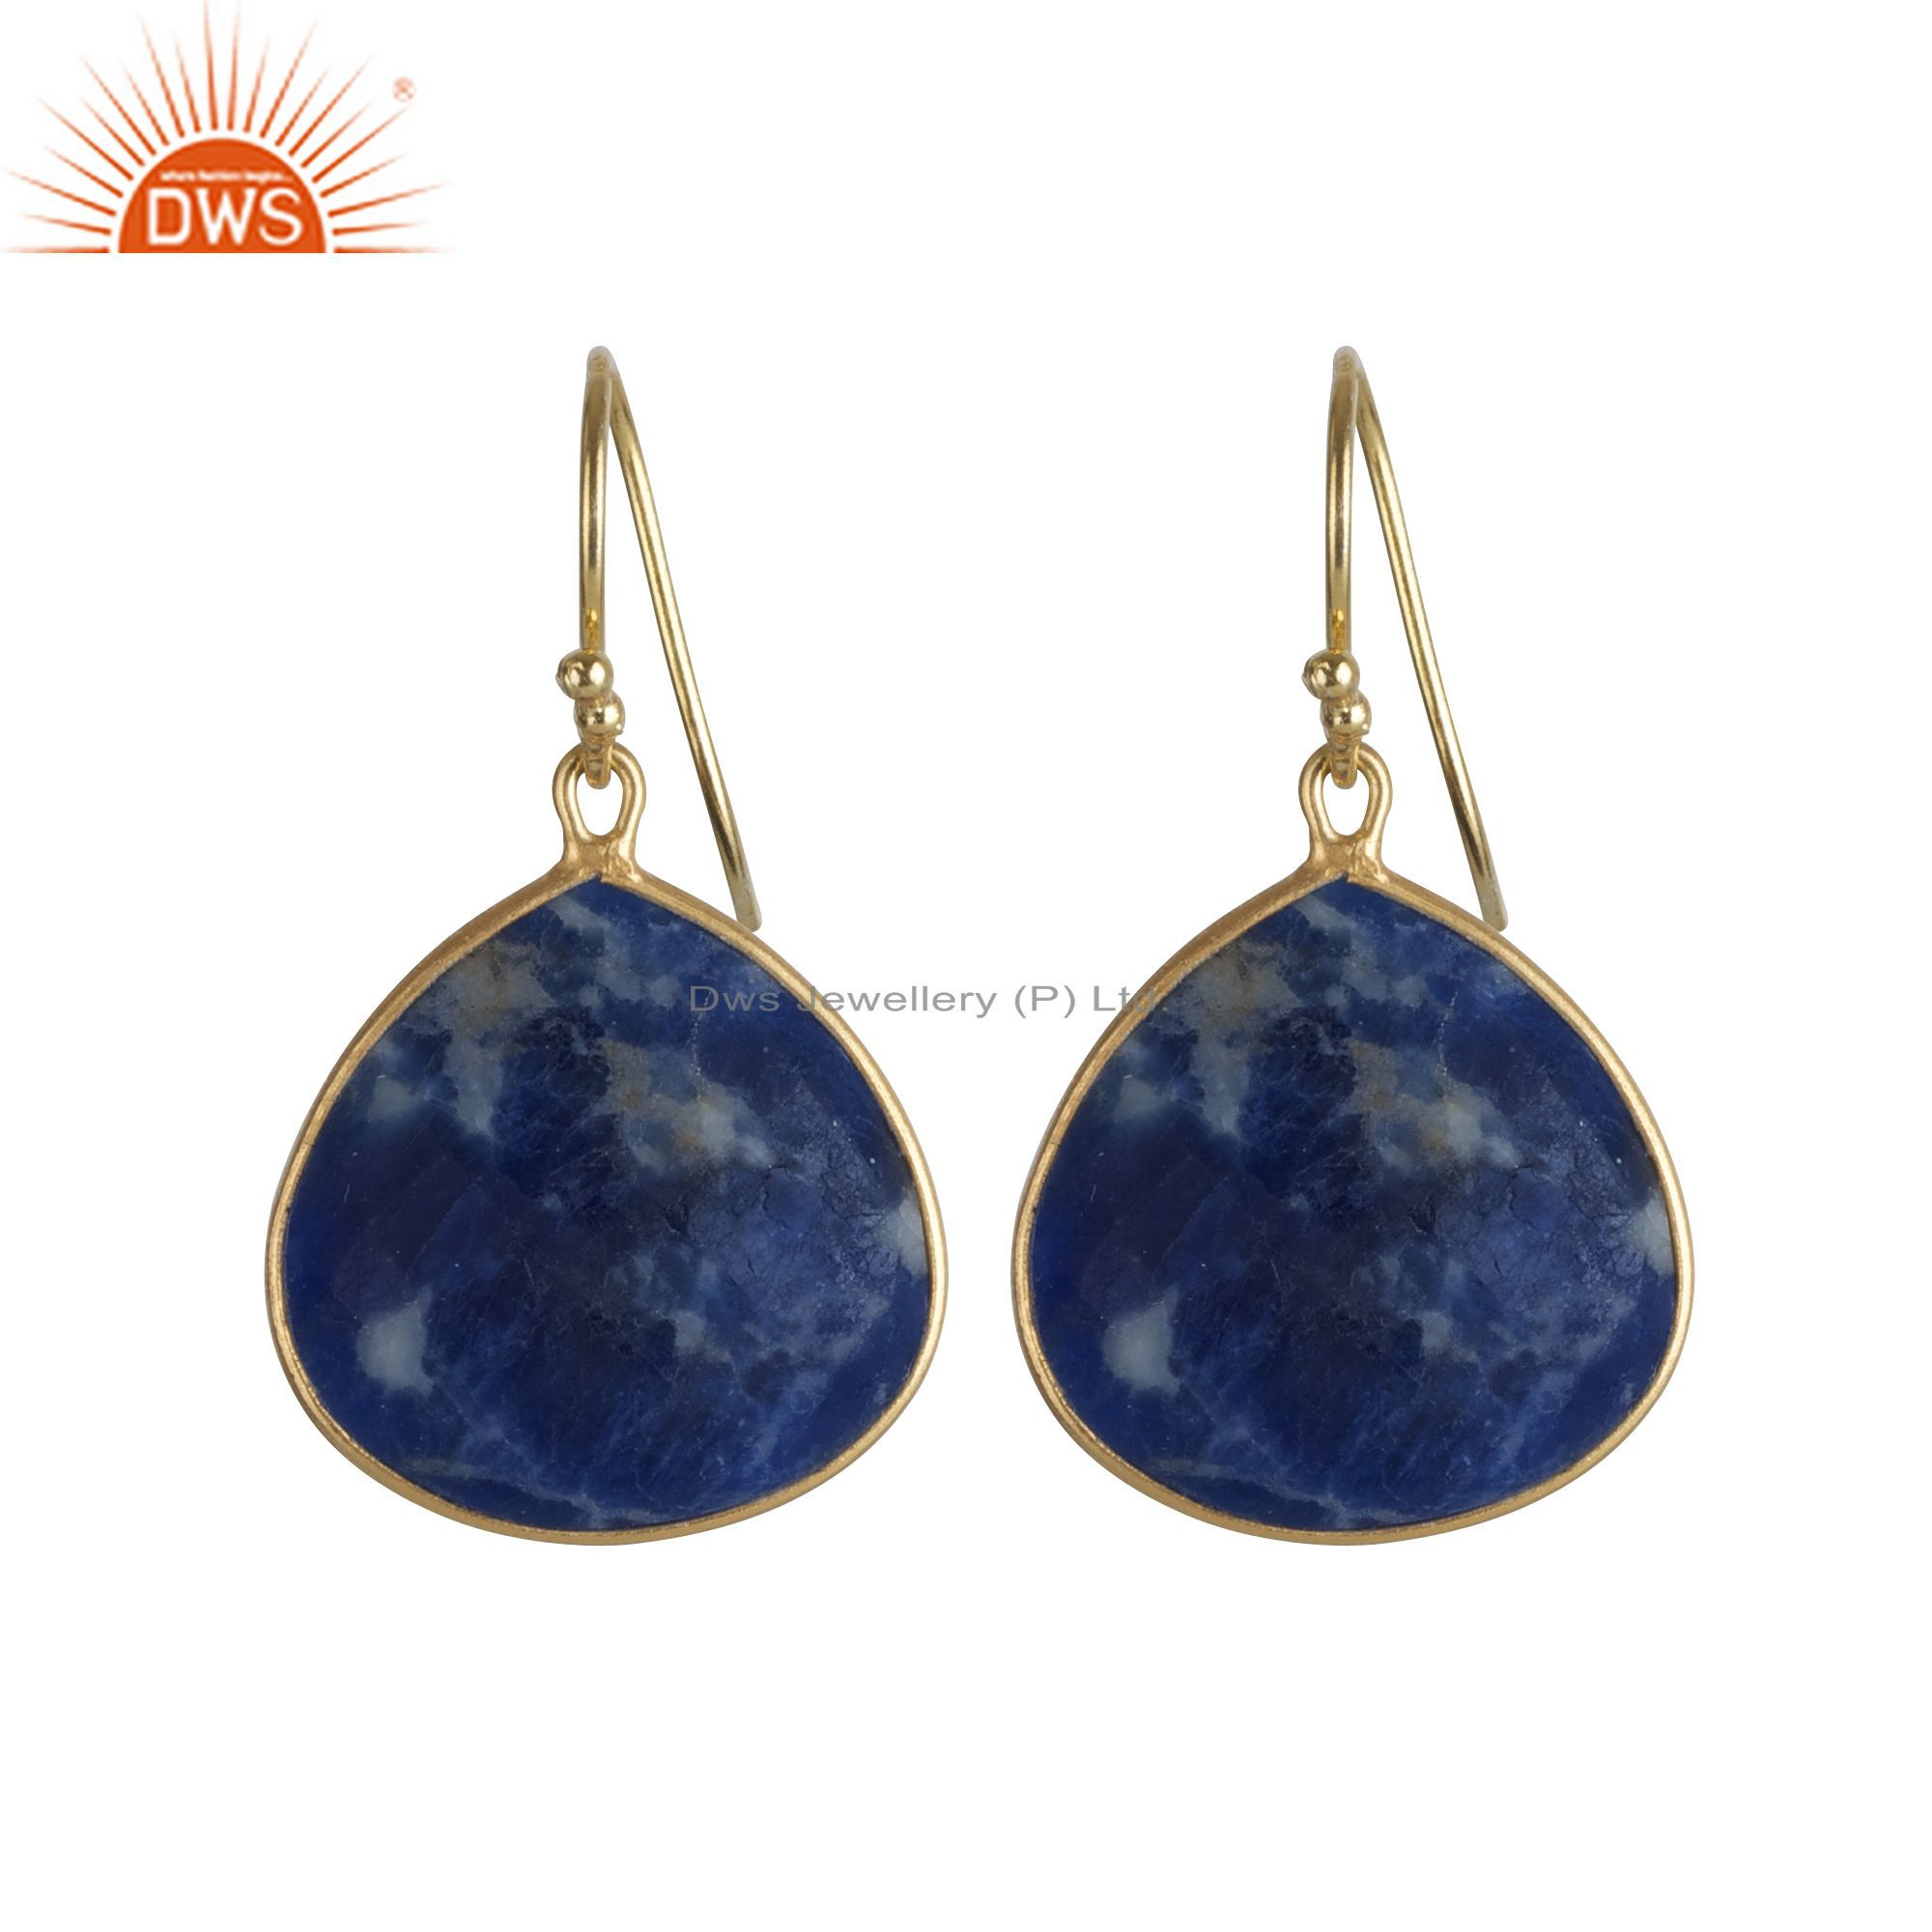 18K Yellow Gold Plated Sterling Silver Sodalite Gemstone Bezel Set Drop Earrings